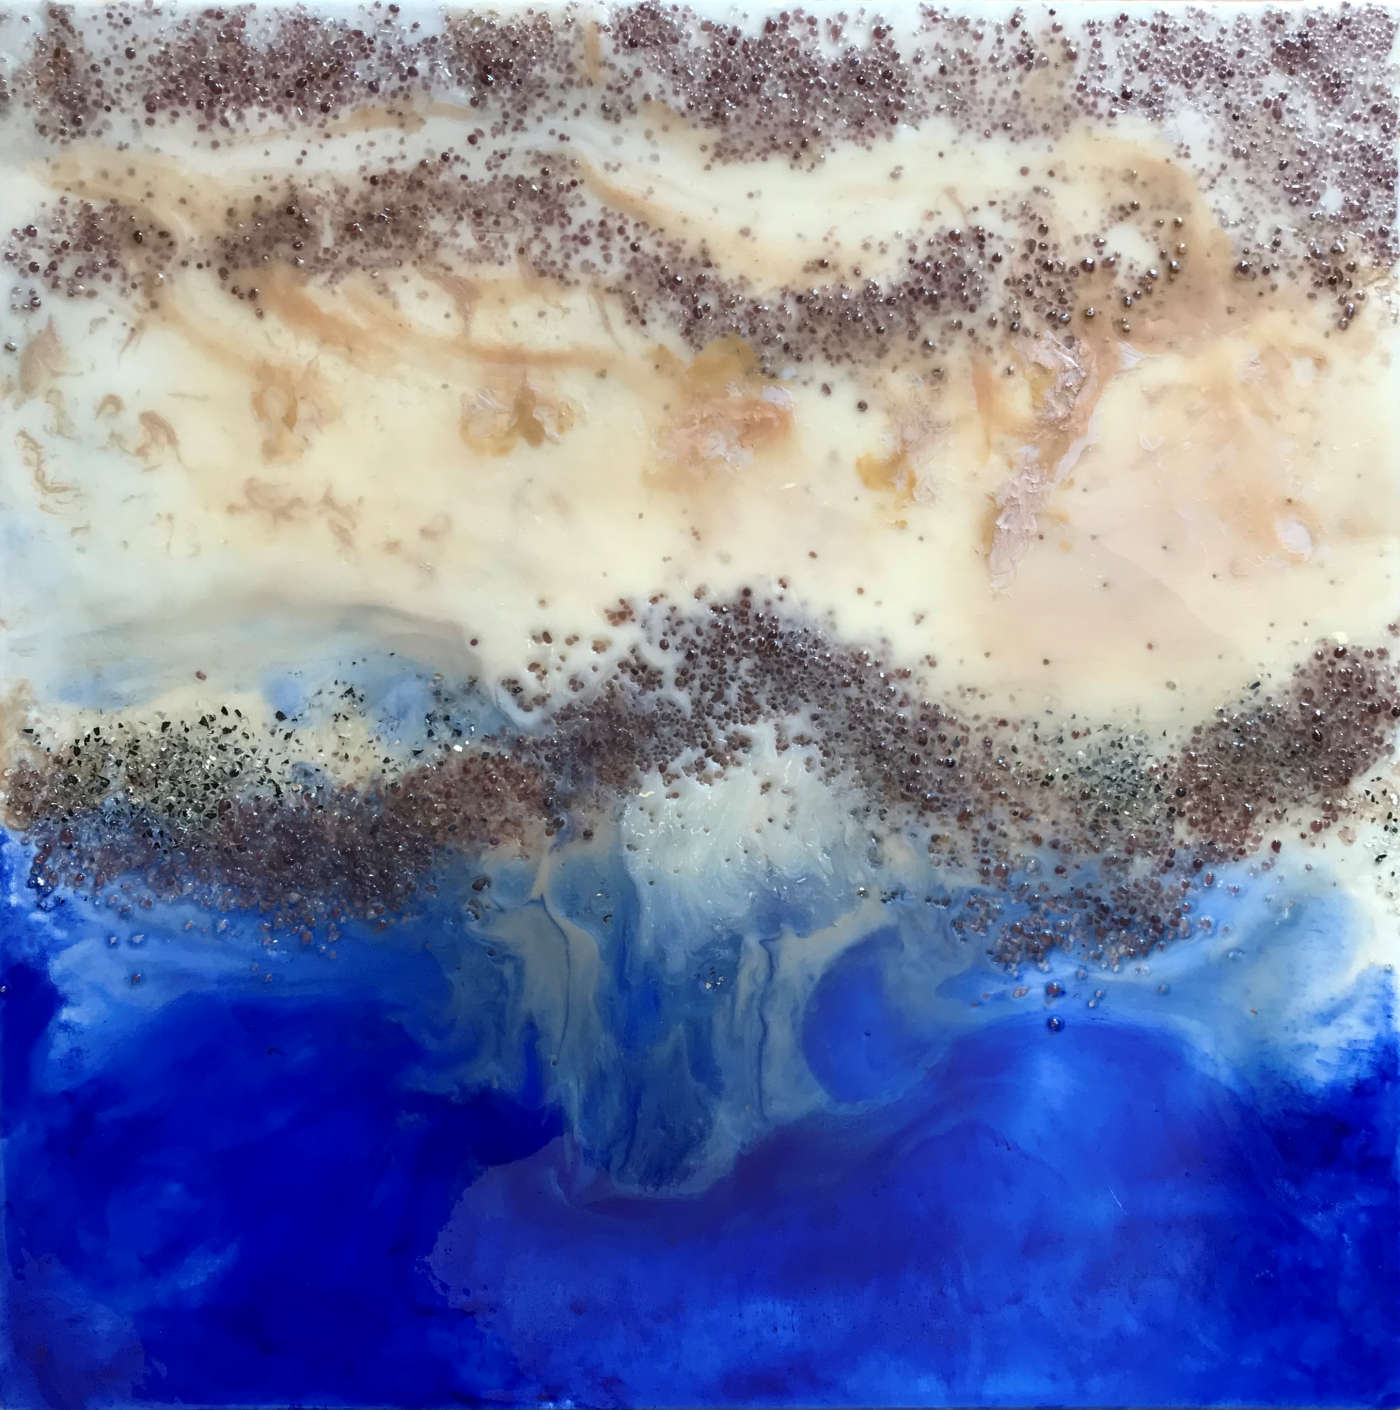 """Battigia"" - cm 70x70x3,8 - resin fluid painting - Quotazione € 850,00"